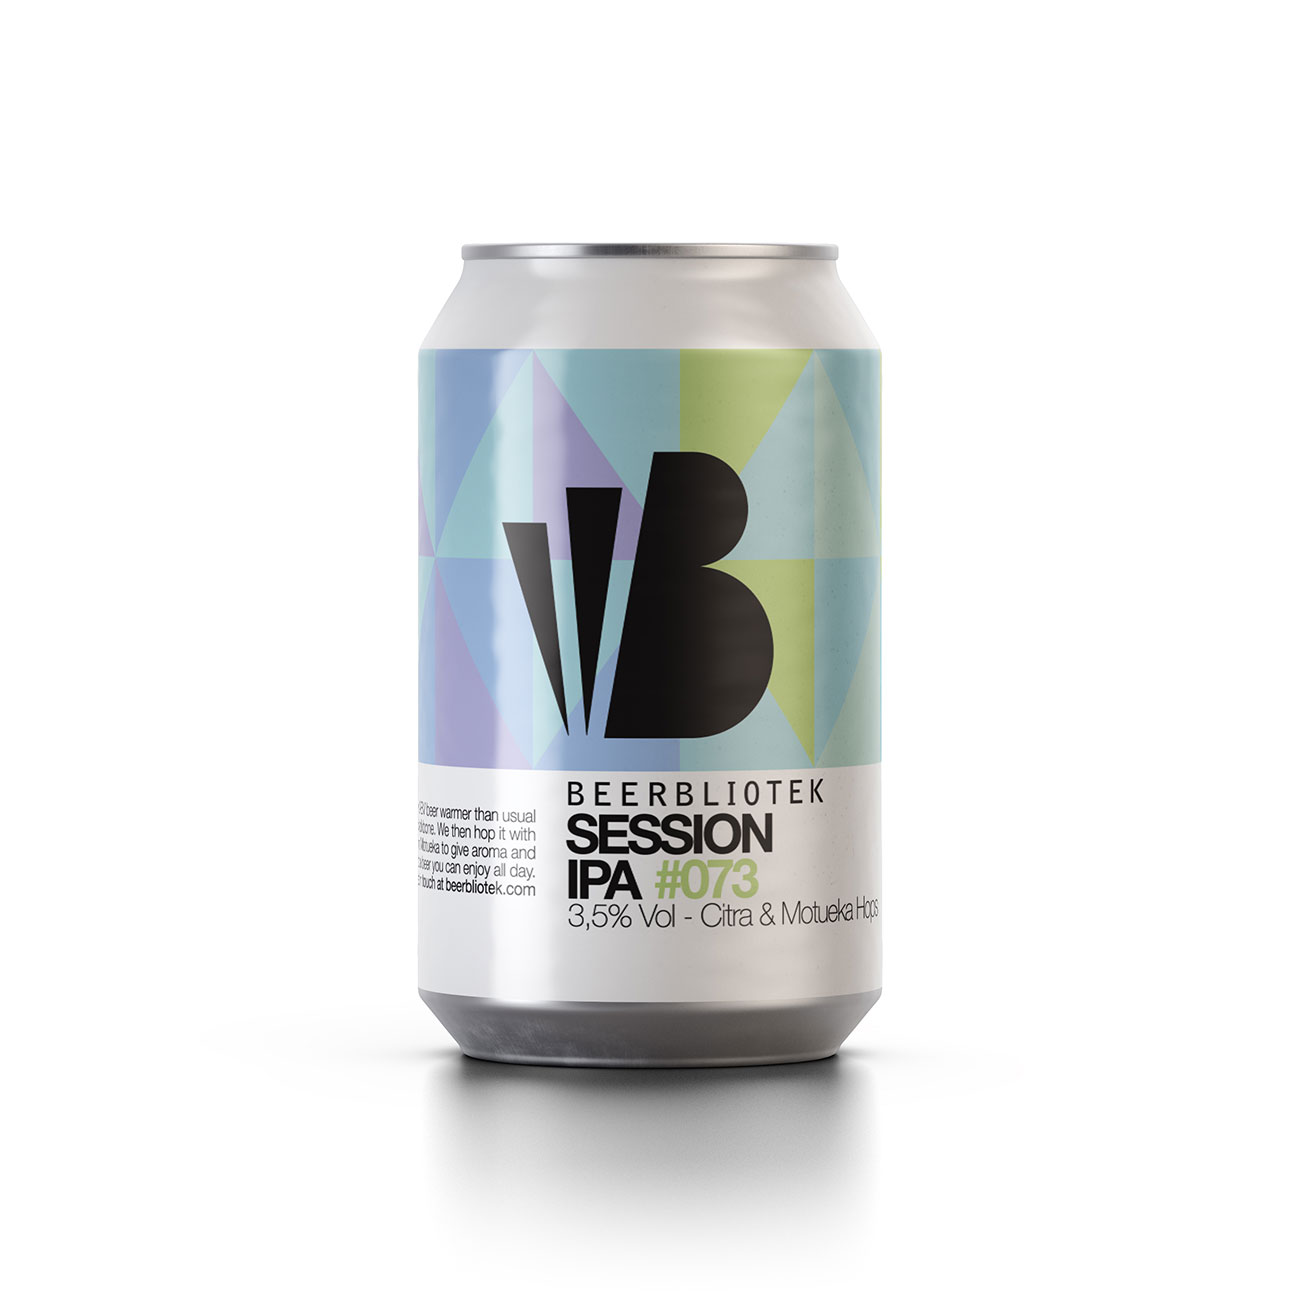 Beerbliotek-Session-IPA-Can-Packshot-Shadow-Web